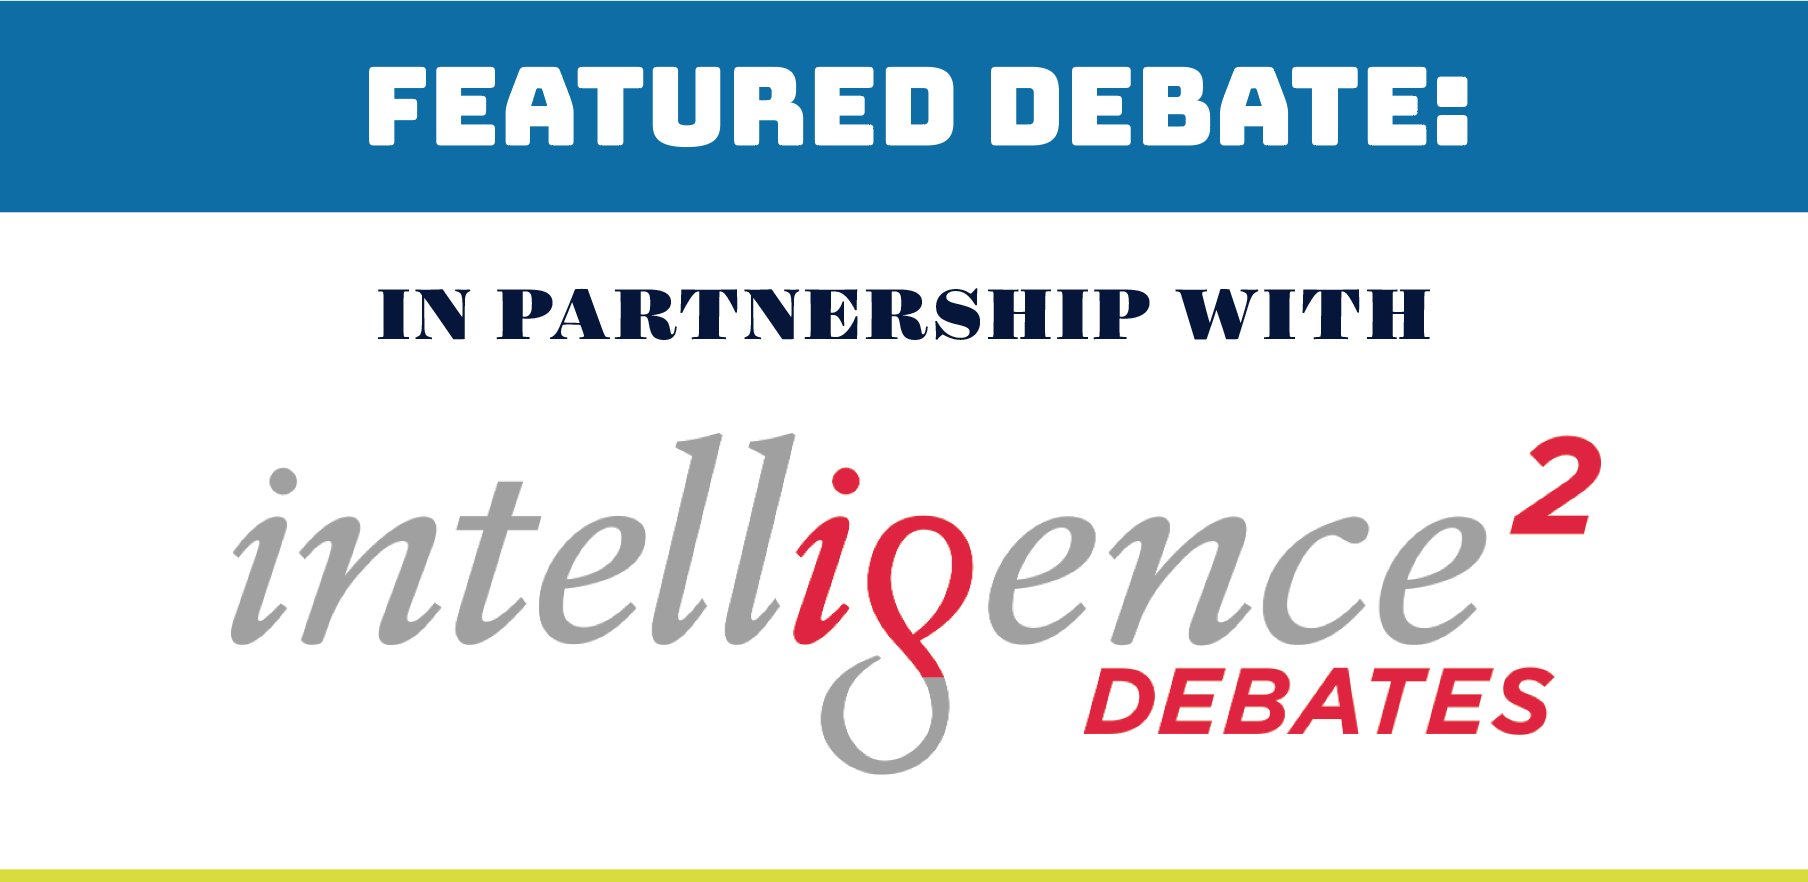 Featured Debate